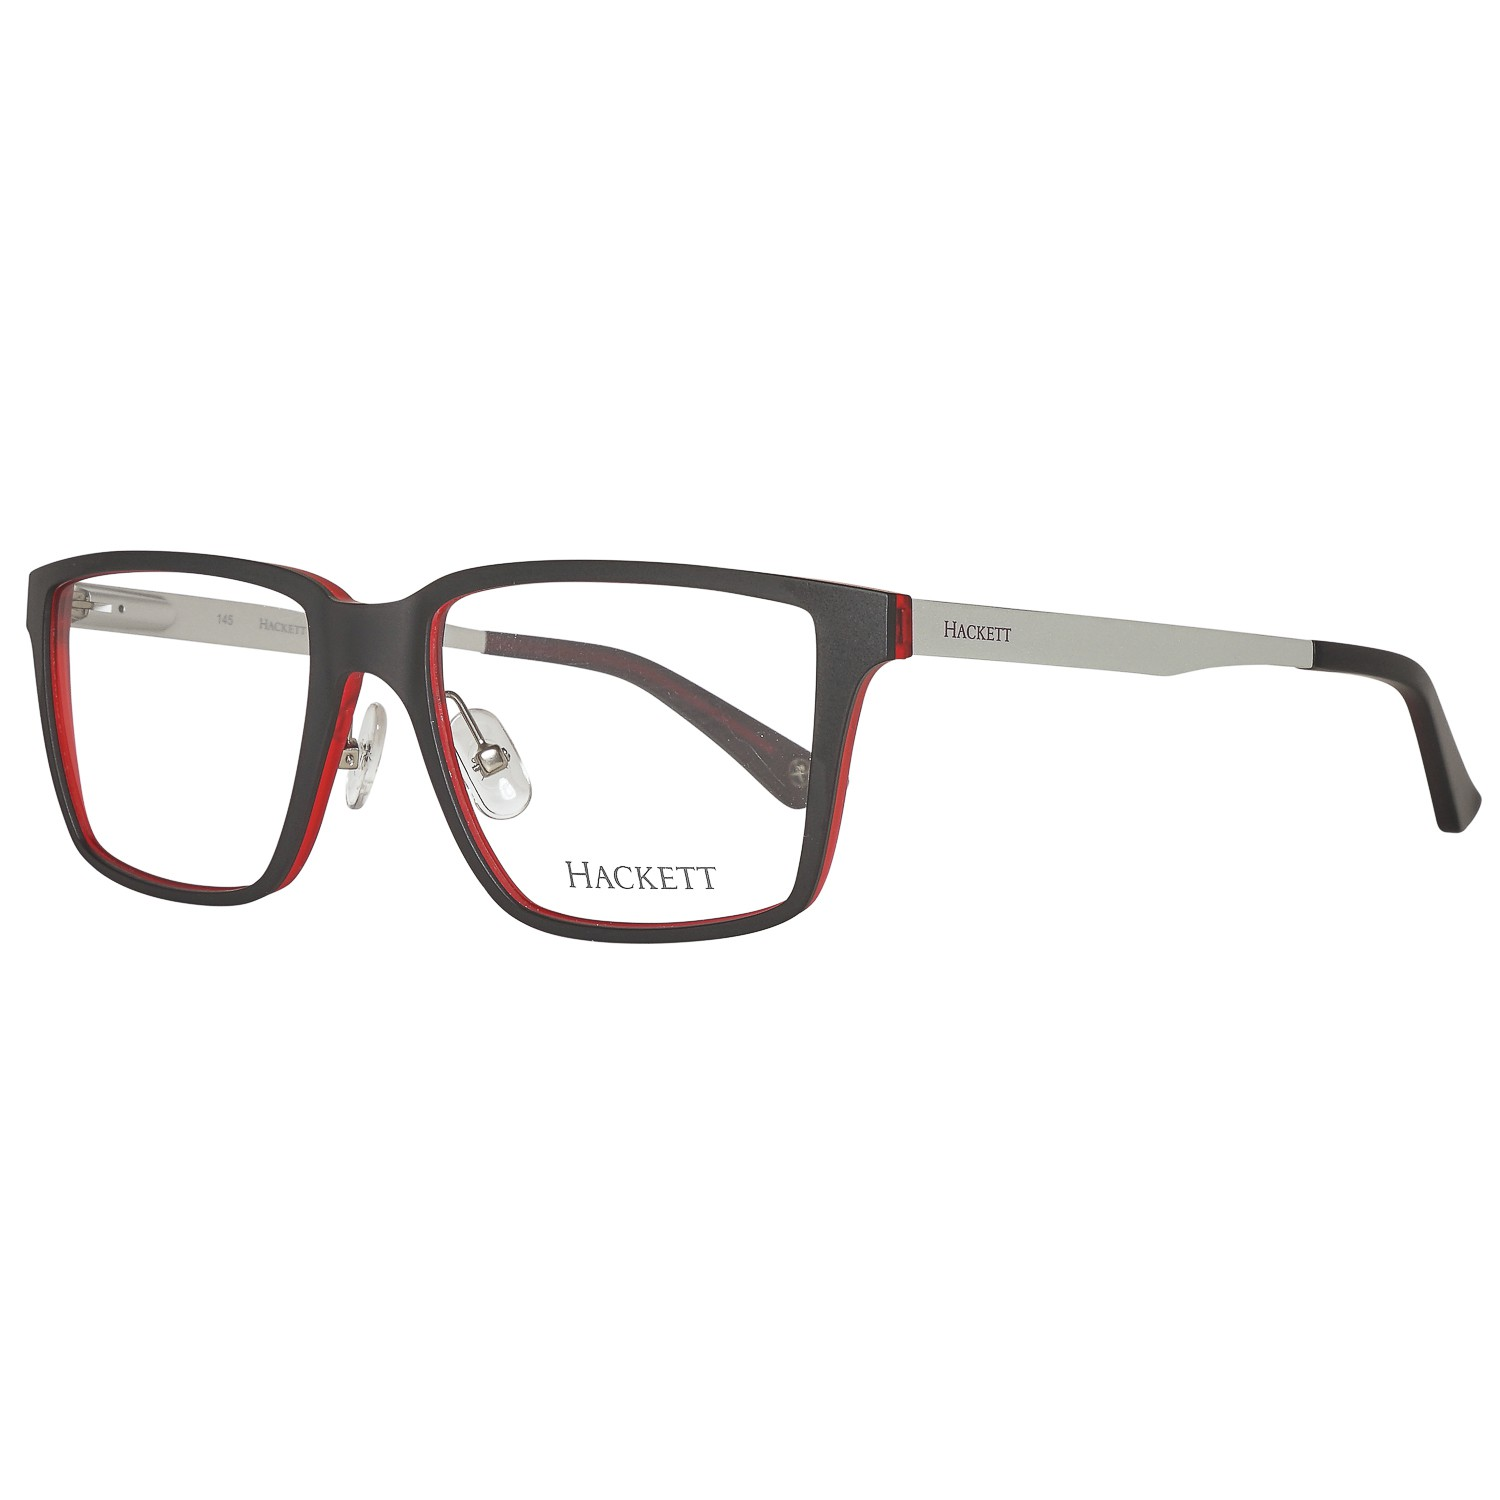 Hackett Optical Frame HEK1154 040 Black